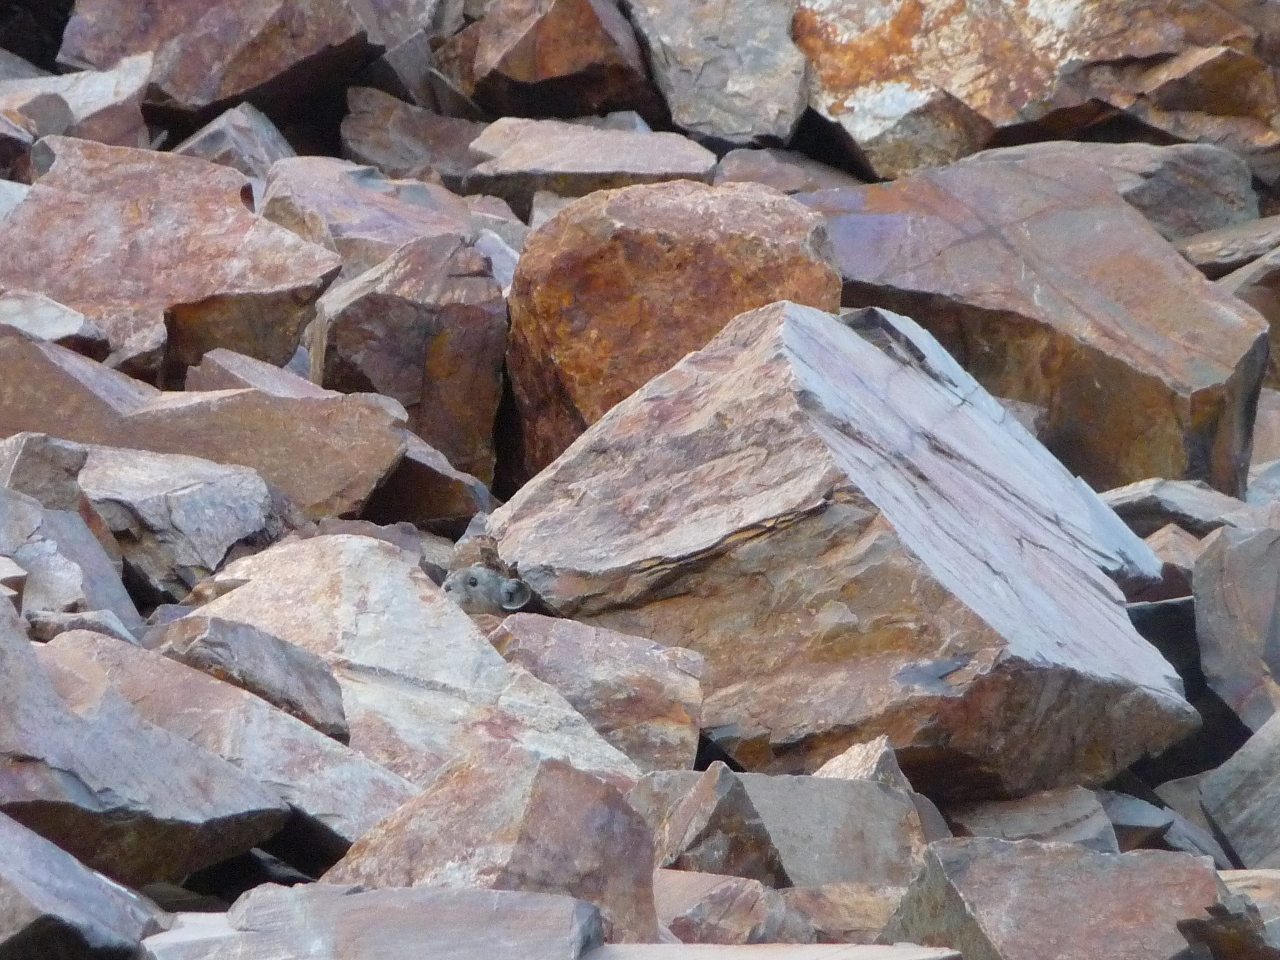 Pika at Lake Genevieve